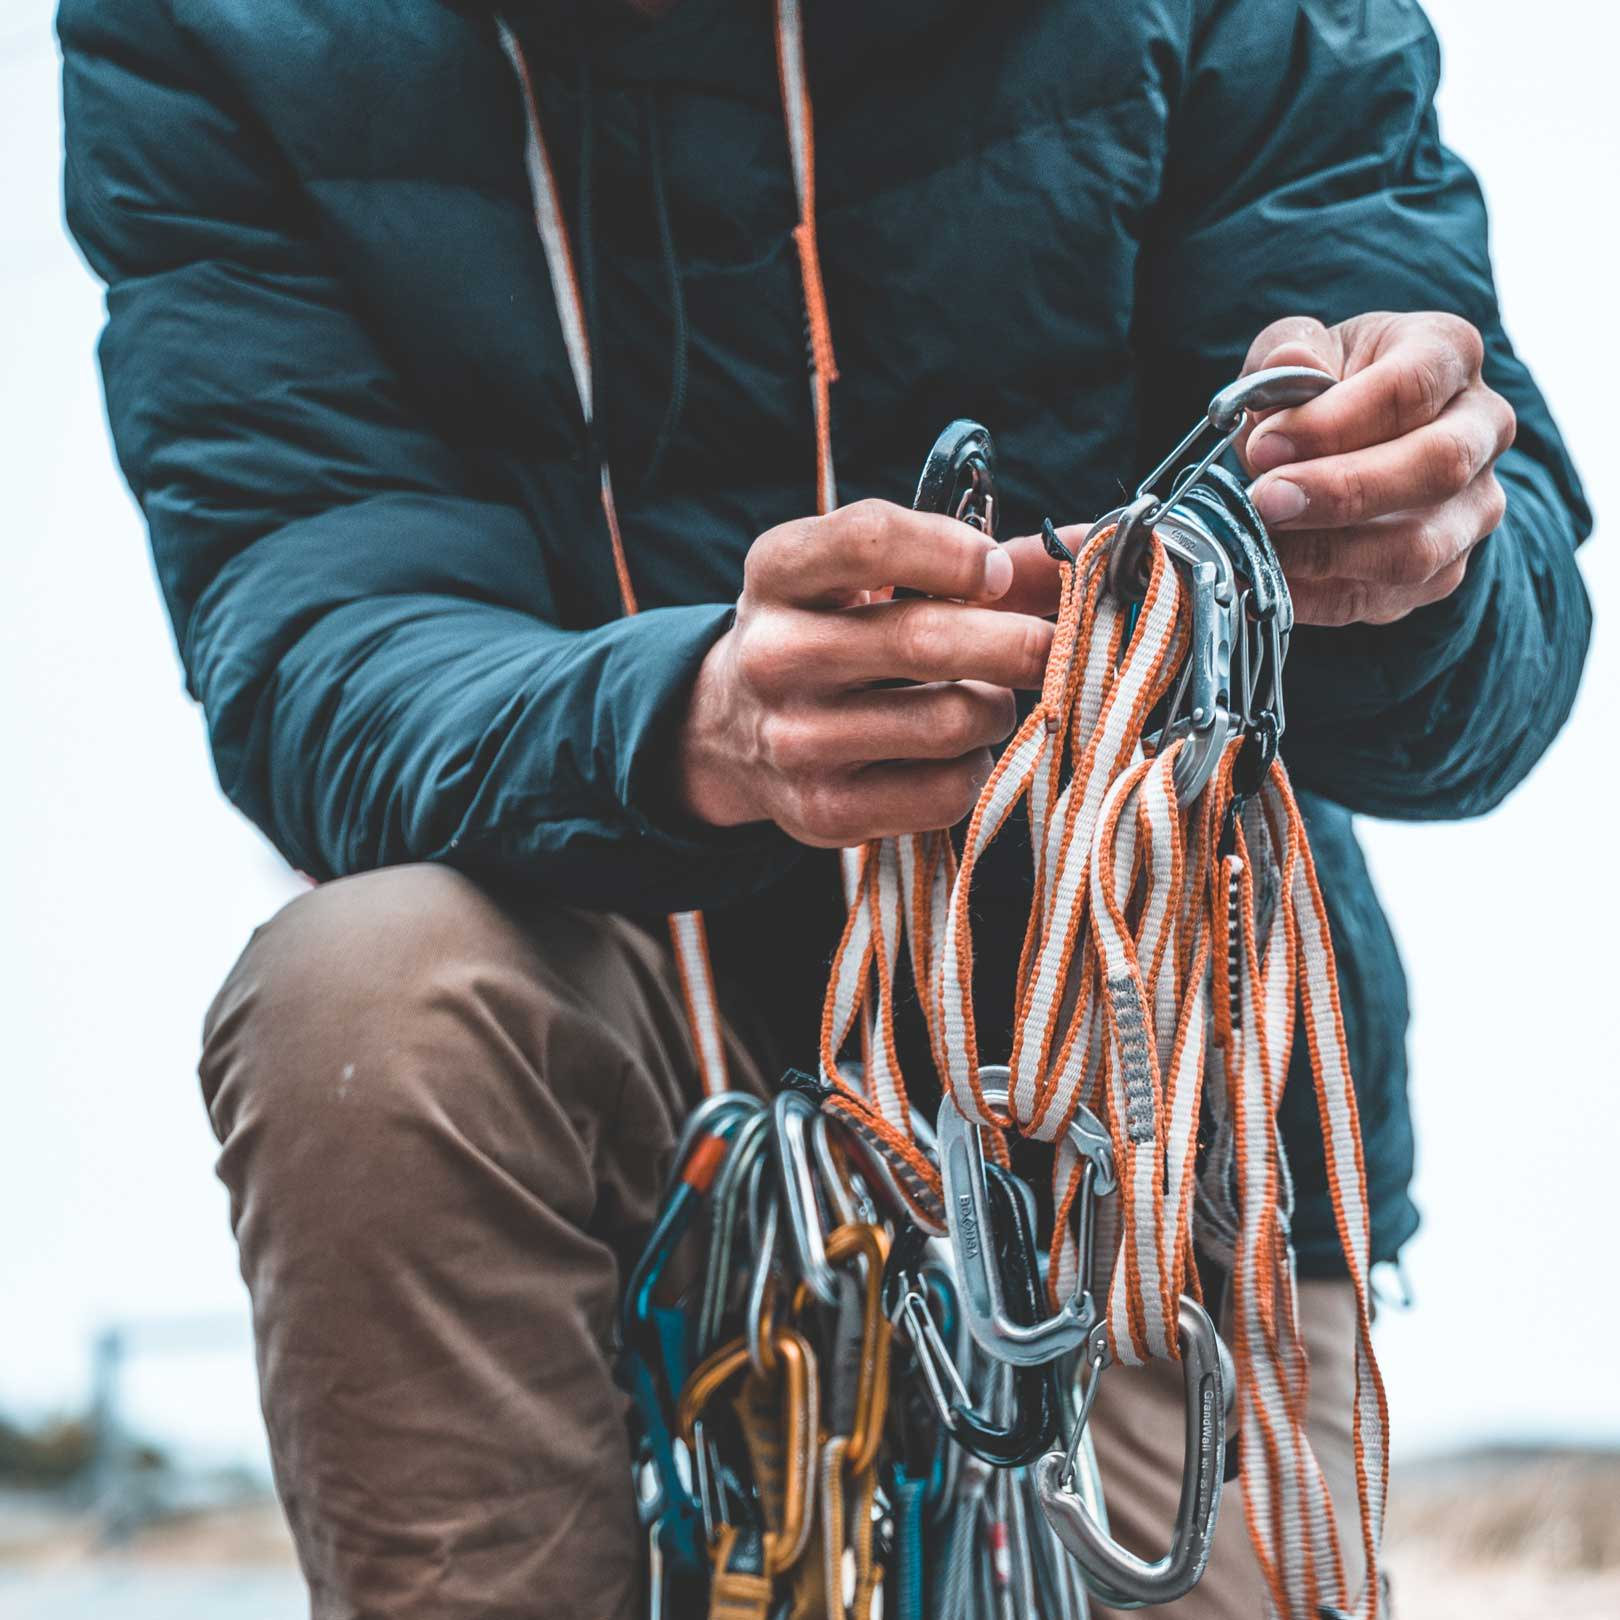 Man organizing climbing gear while wearing Robson Down Hoody